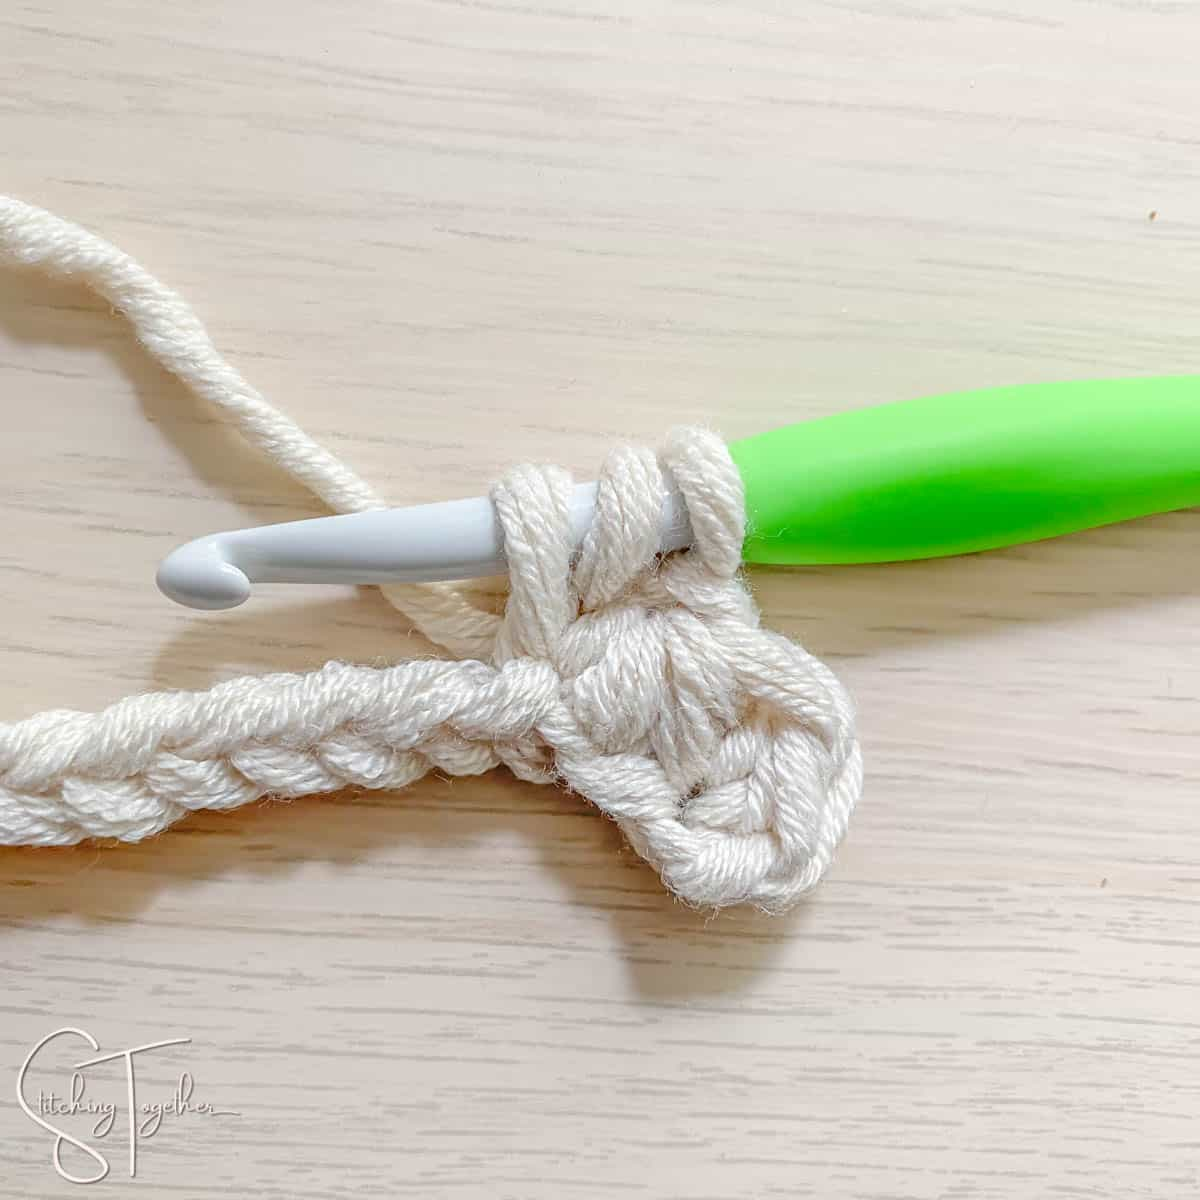 crochet hook and yarn showing the steps for a mhdc3tog